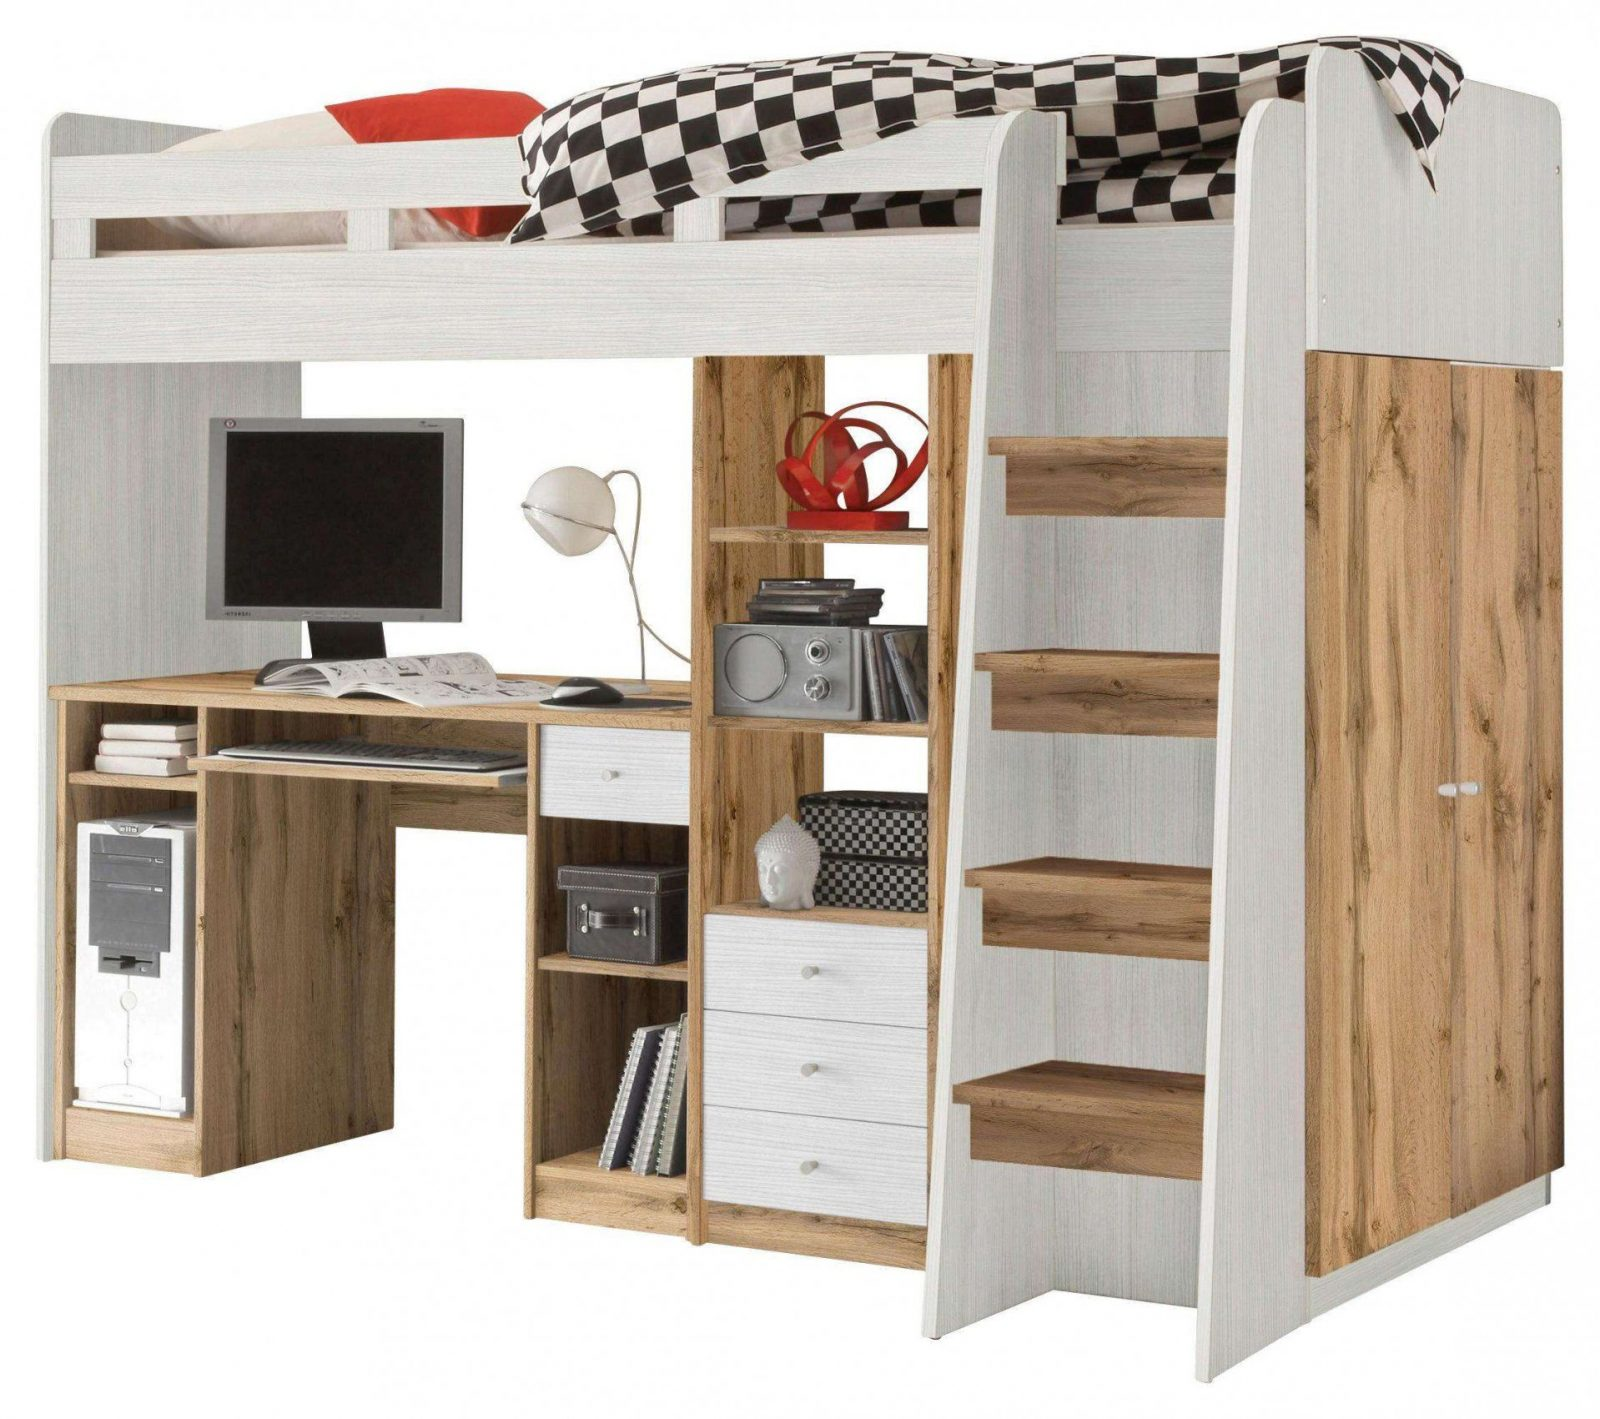 halbhohes kinderbett mit treppe haus design ideen. Black Bedroom Furniture Sets. Home Design Ideas